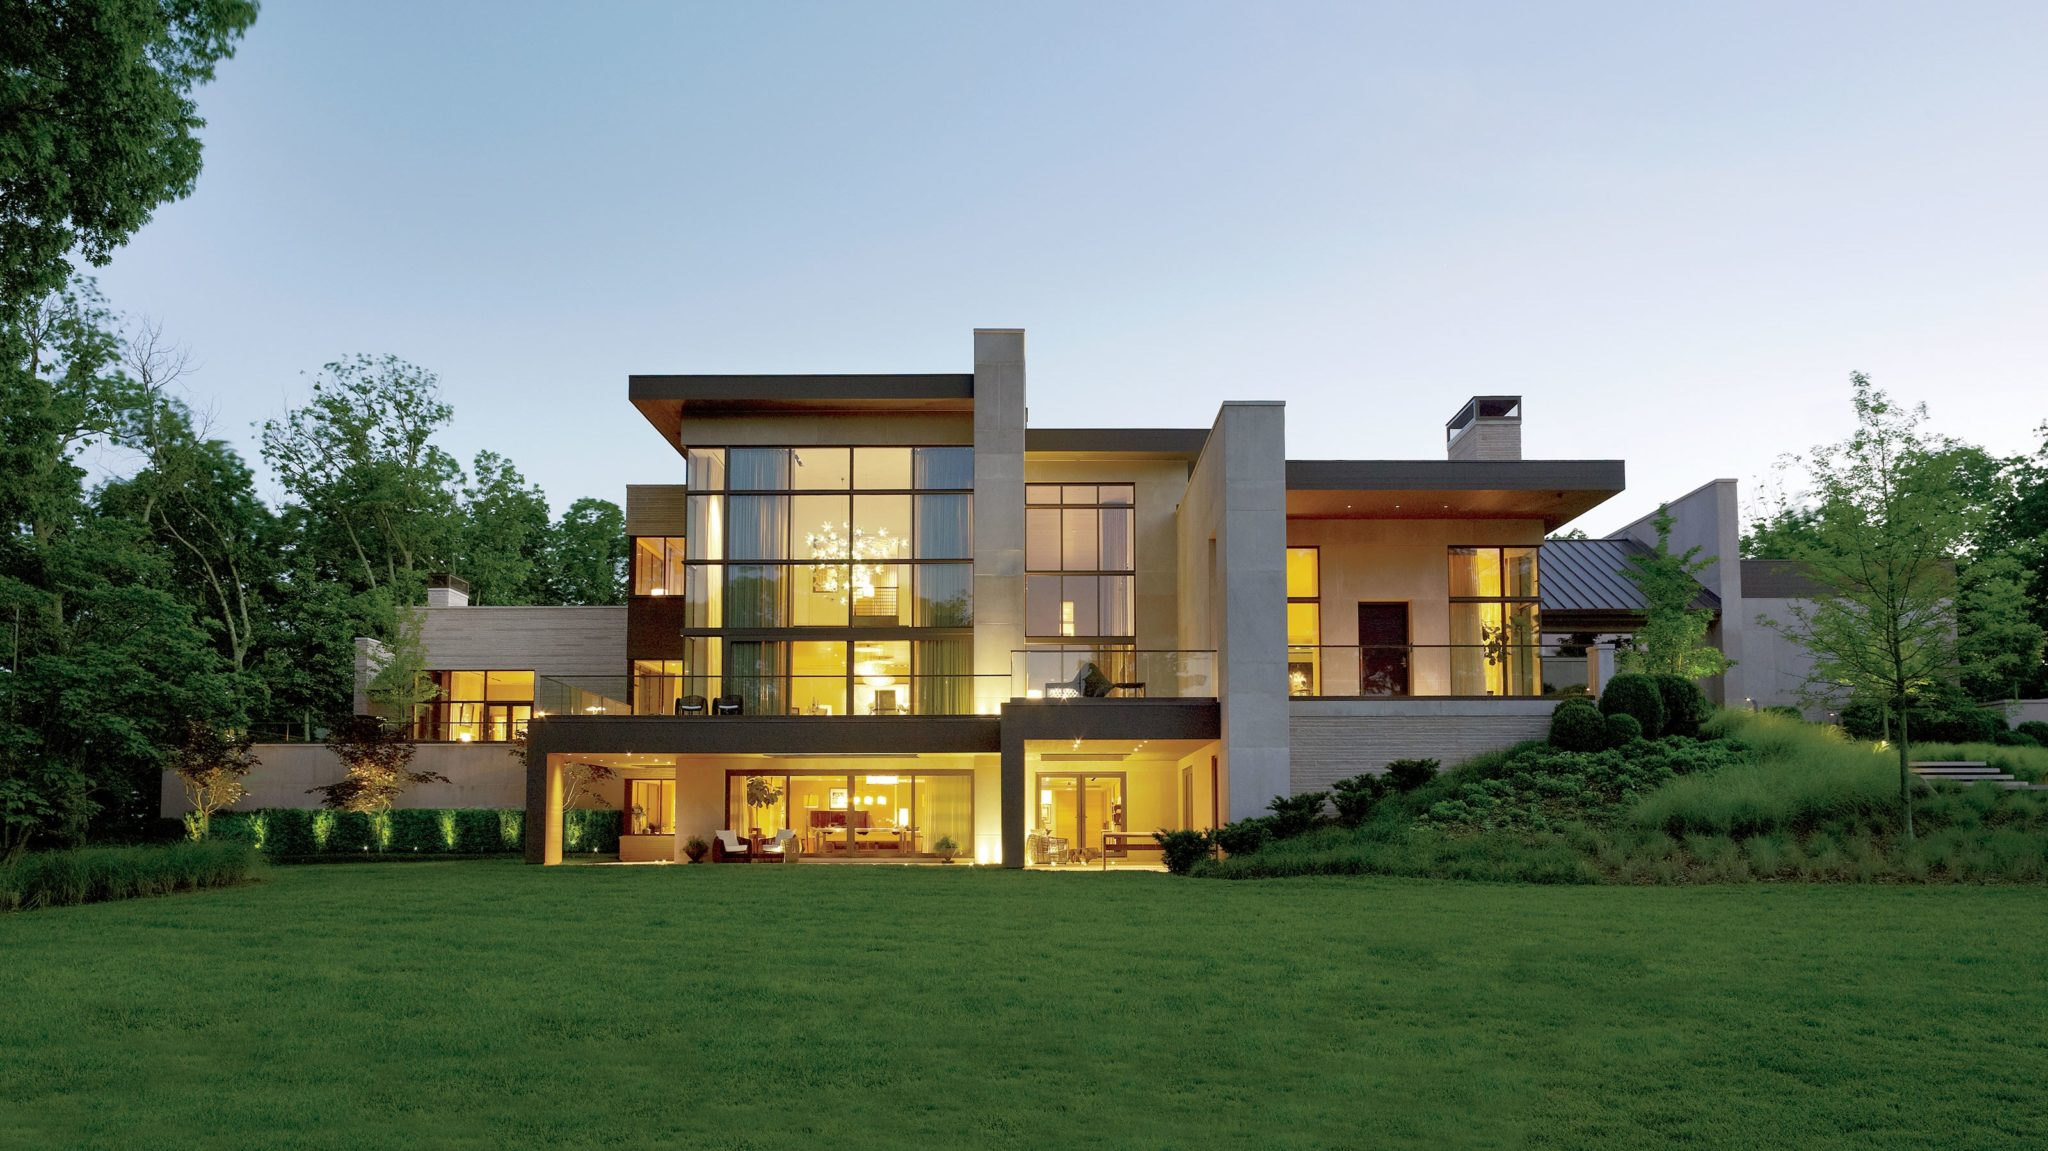 Contemporary Homes For Sale In Franklin Tn